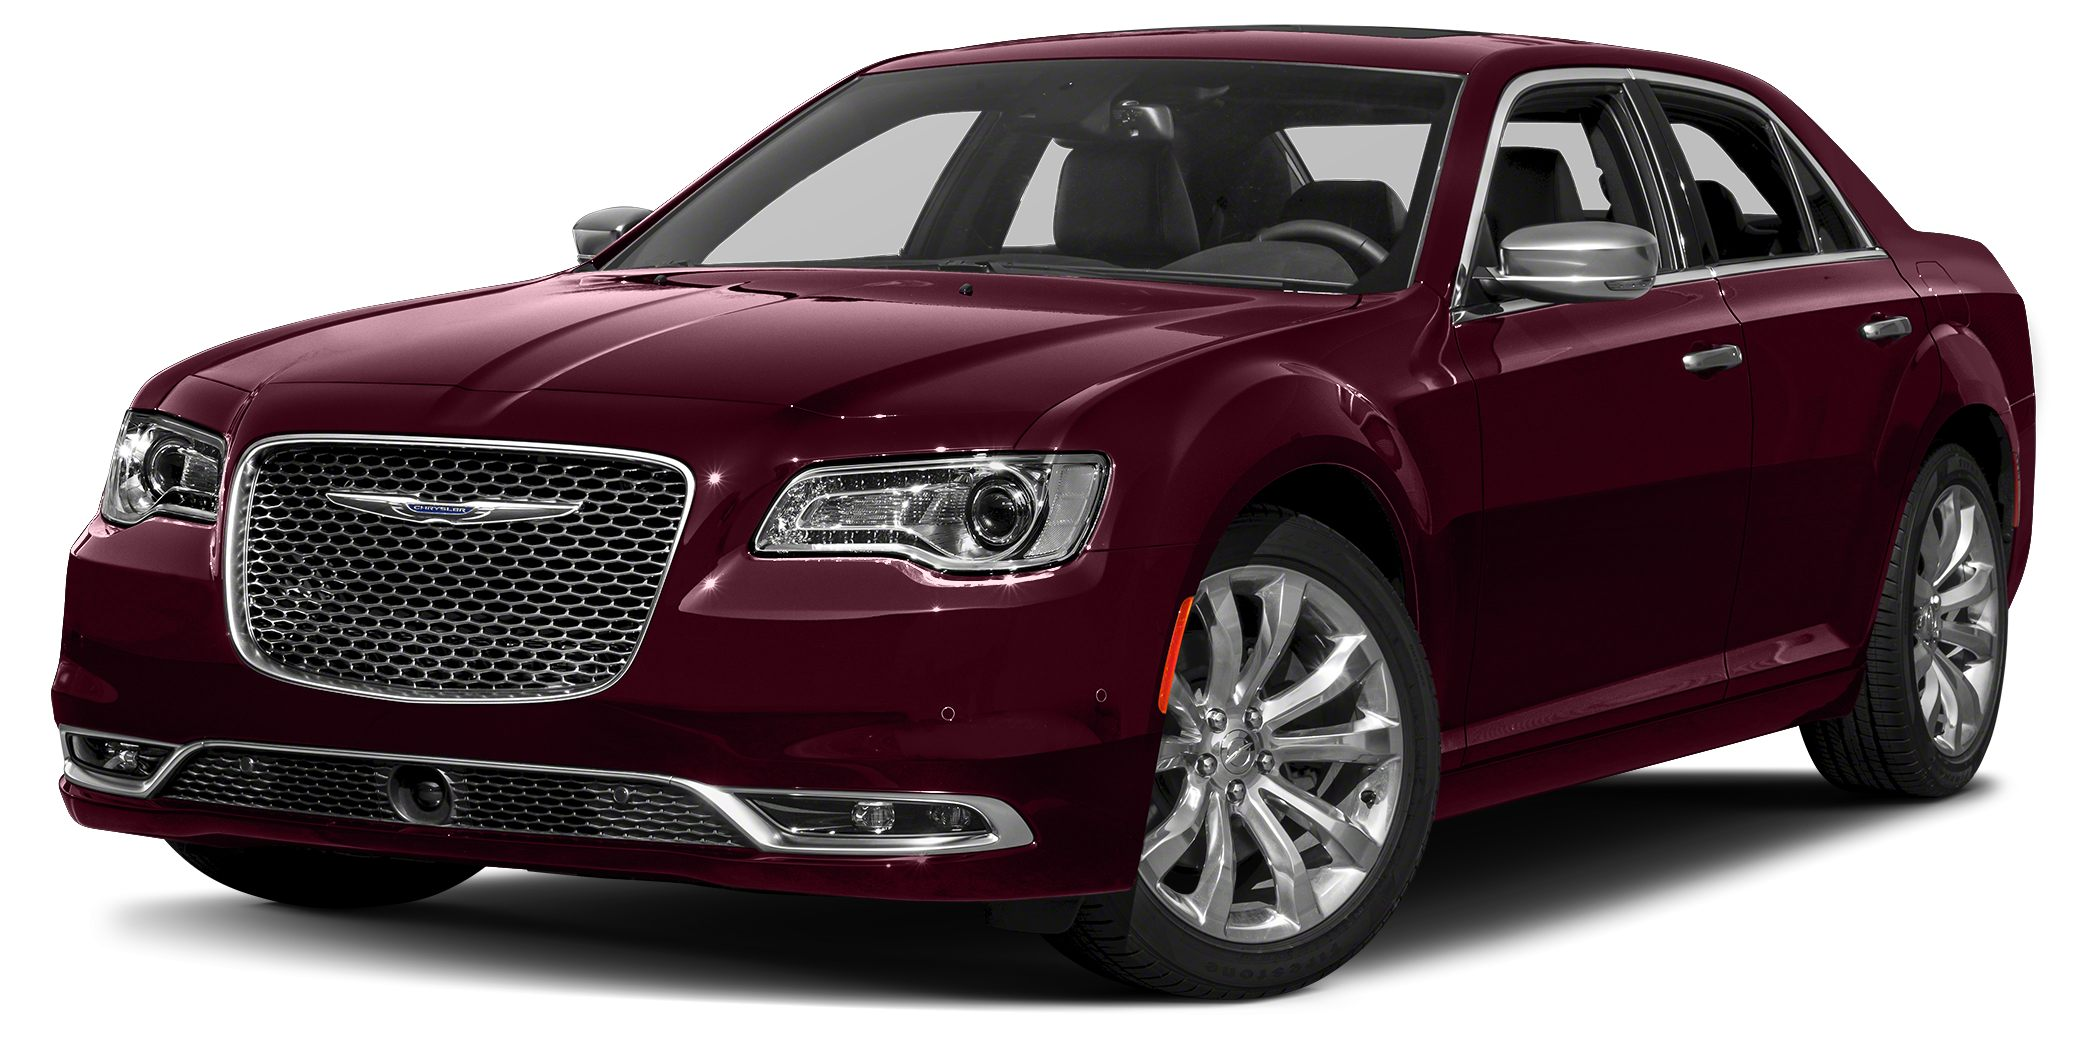 2016 Chrysler 300C Base At Advantage Chrysler you know you are getting a safe and dependable vehic